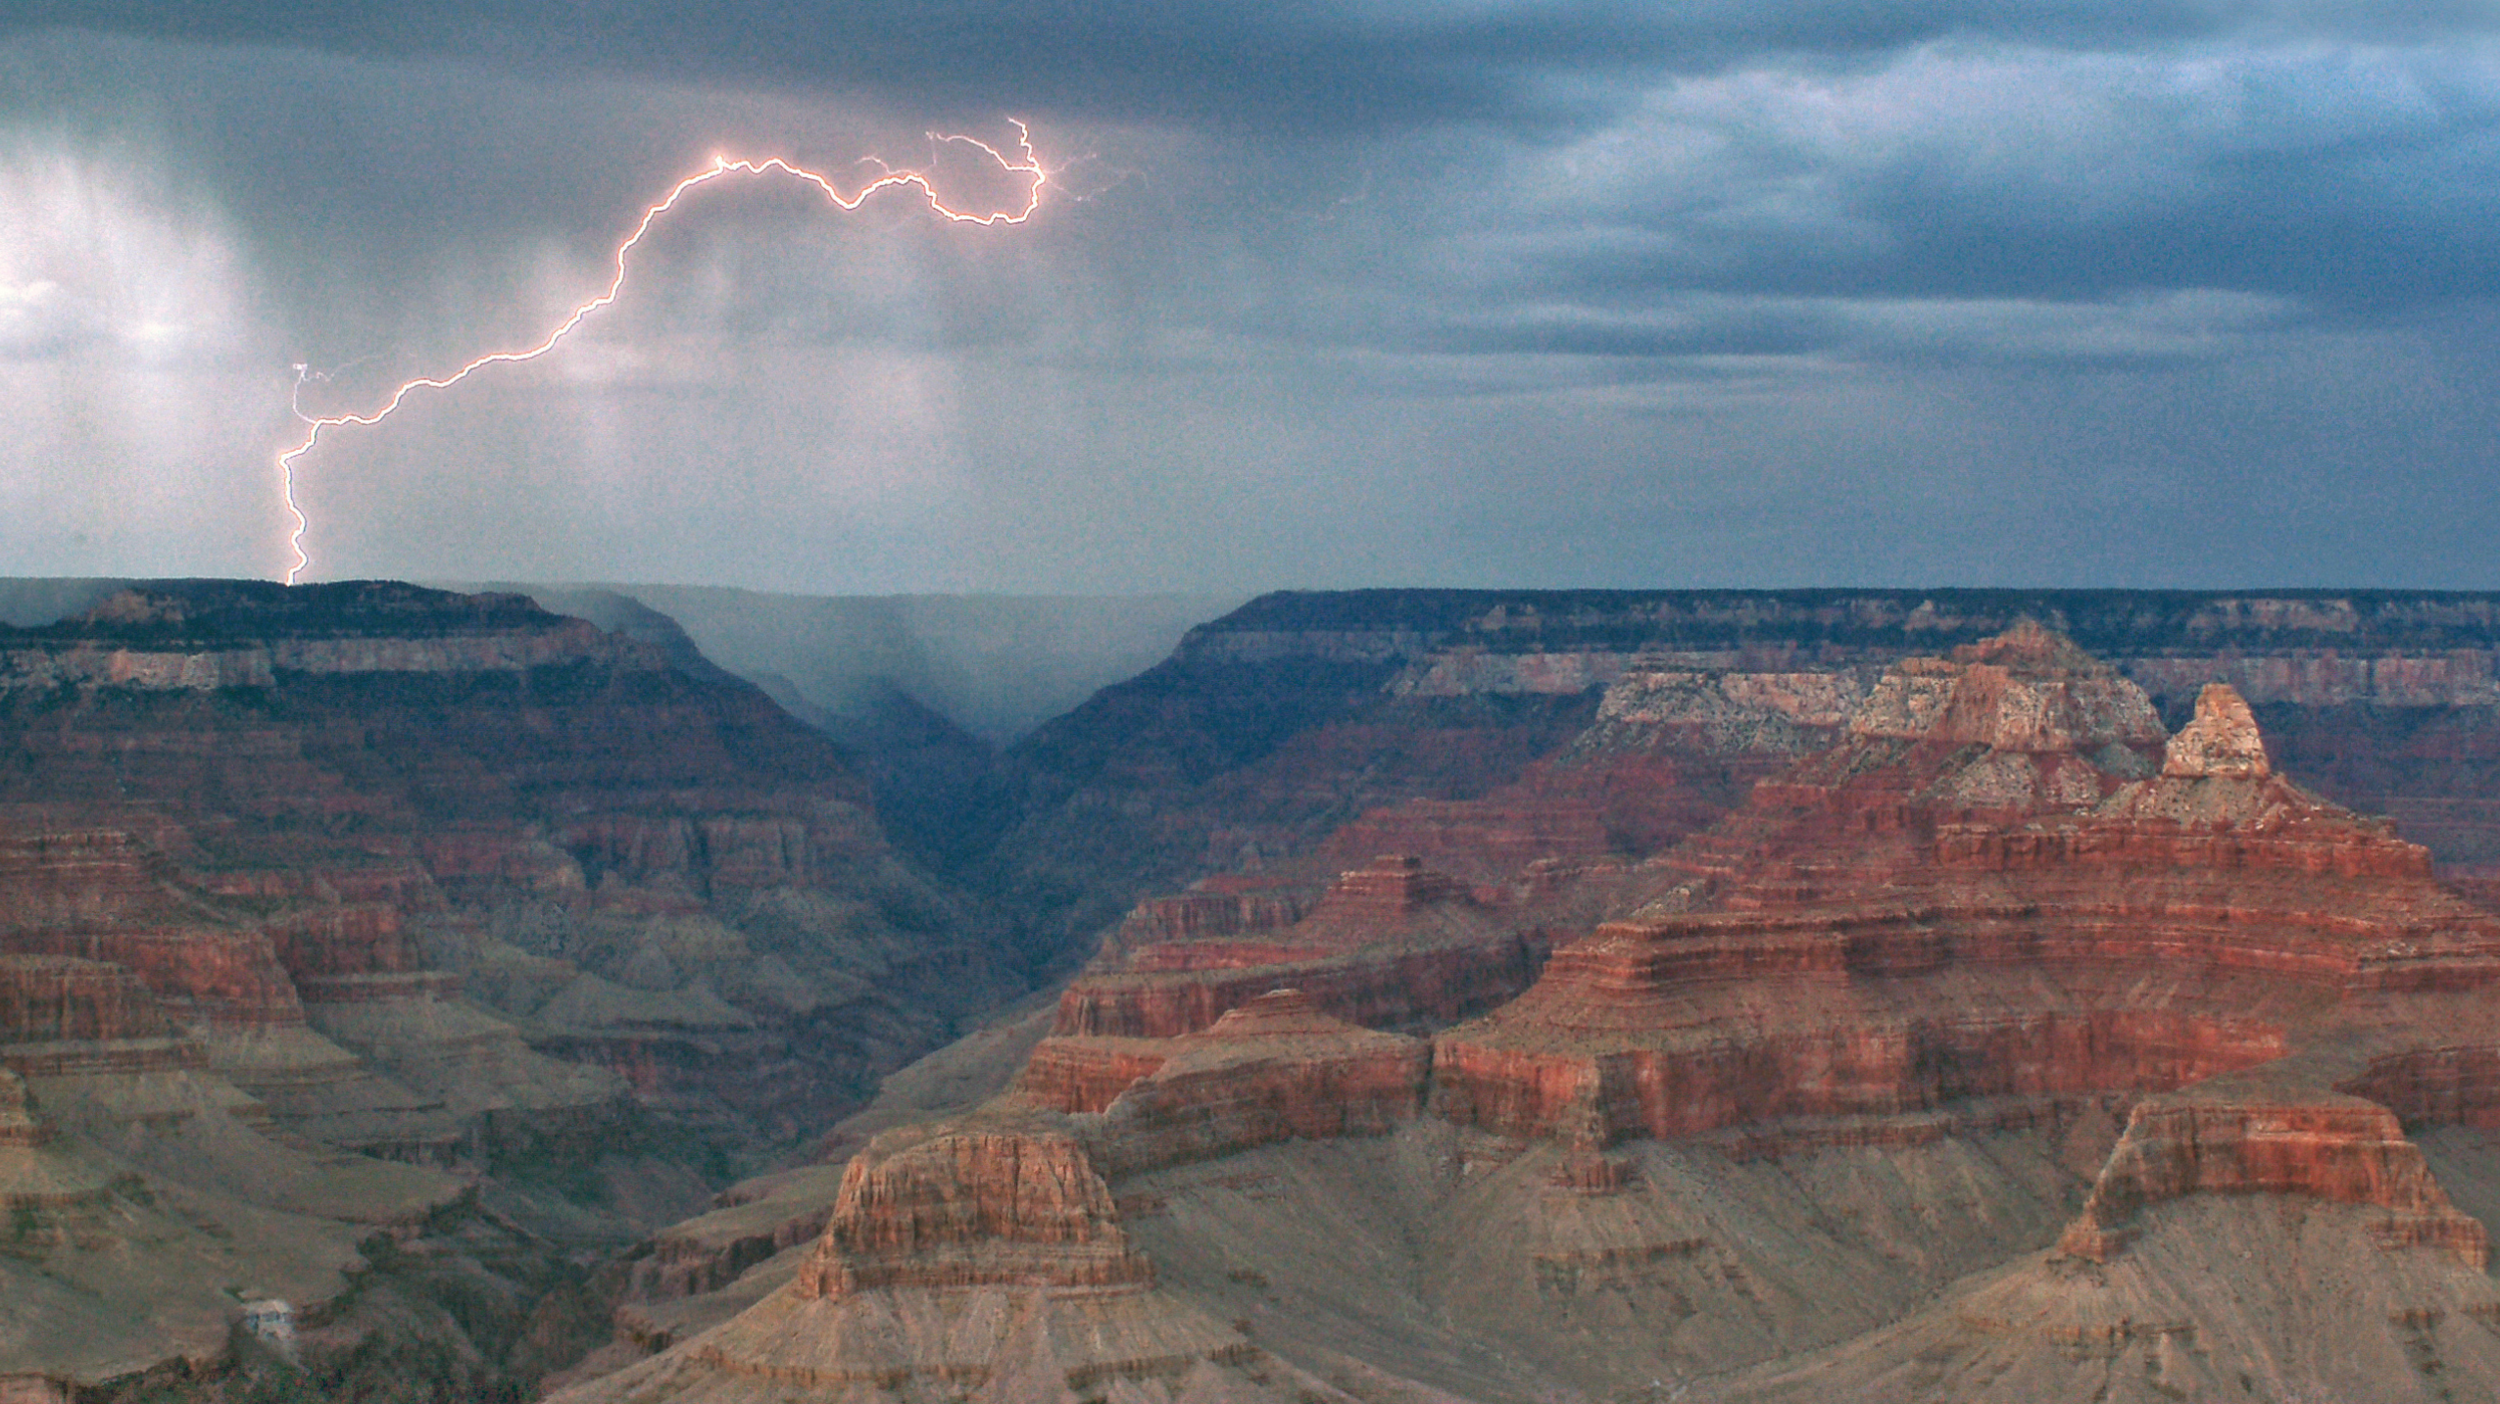 V. Cloudburst   Beginning with magical glimpses of a snow-covered canyon in winter, this movement moves into a dark and violent storm. Once the storm passes, the canyon is revealed in its full grandeur.